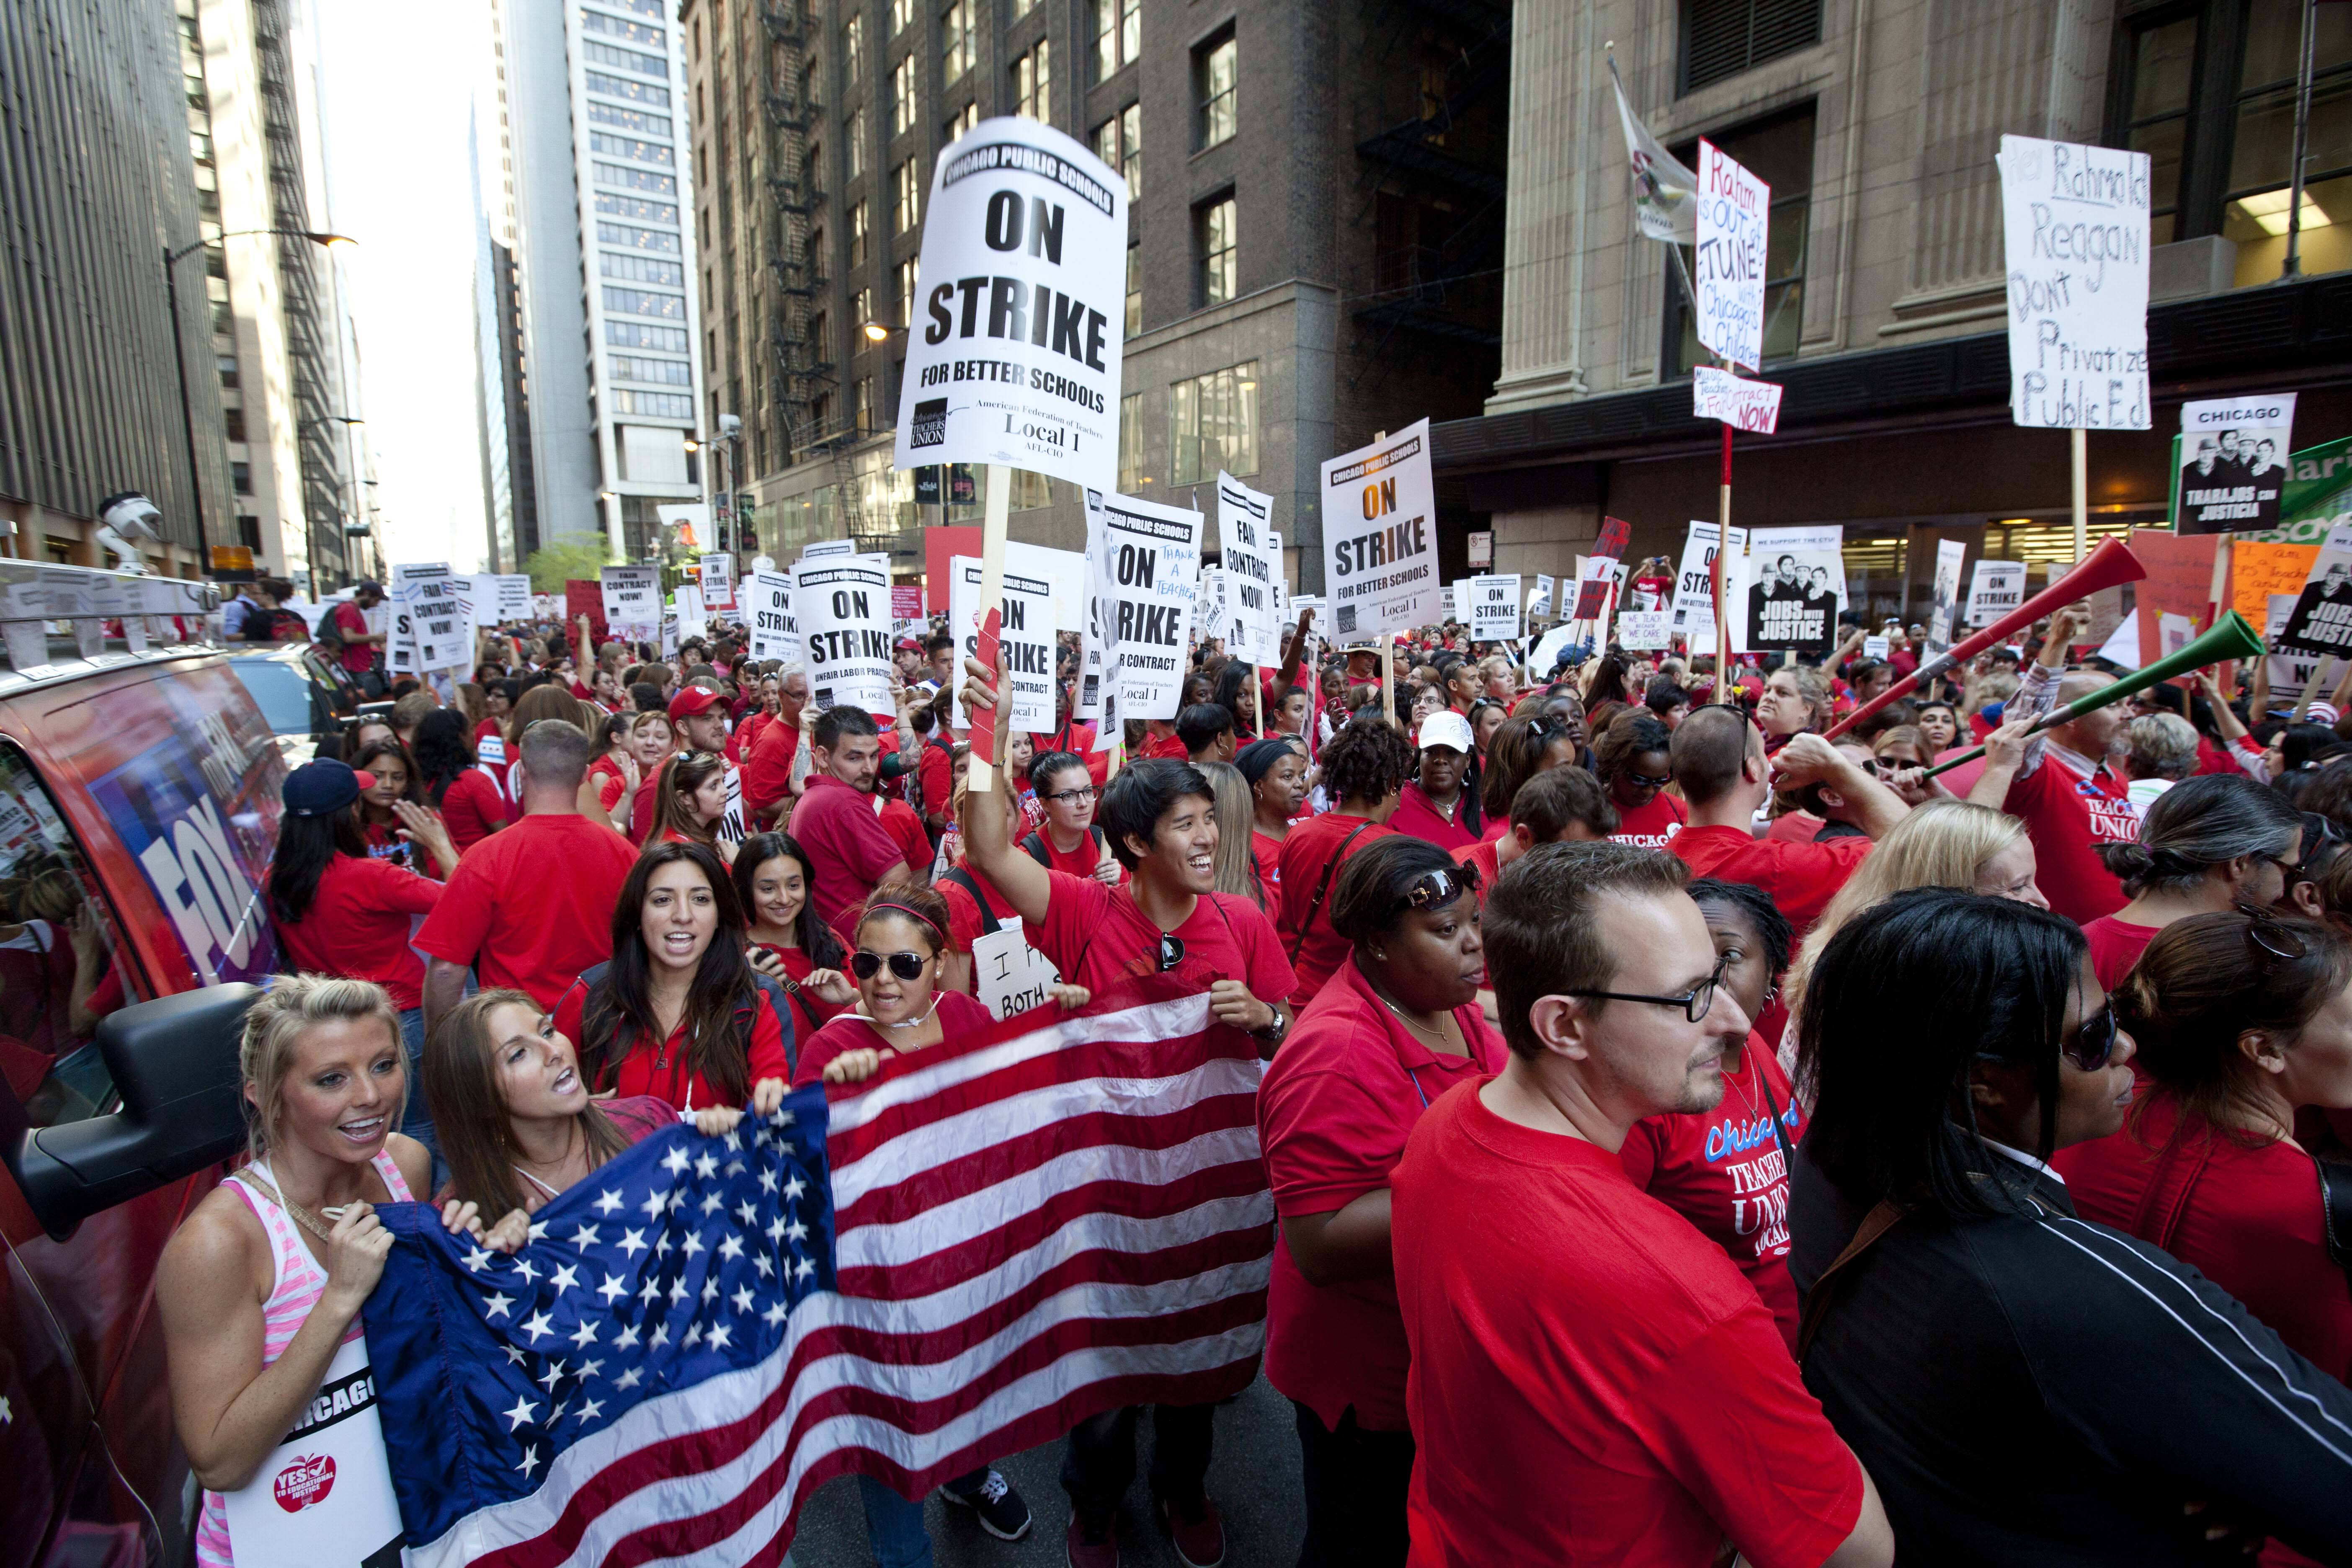 Thousands of public school teachers rally outside the Chicago Public Schools district headquarters.